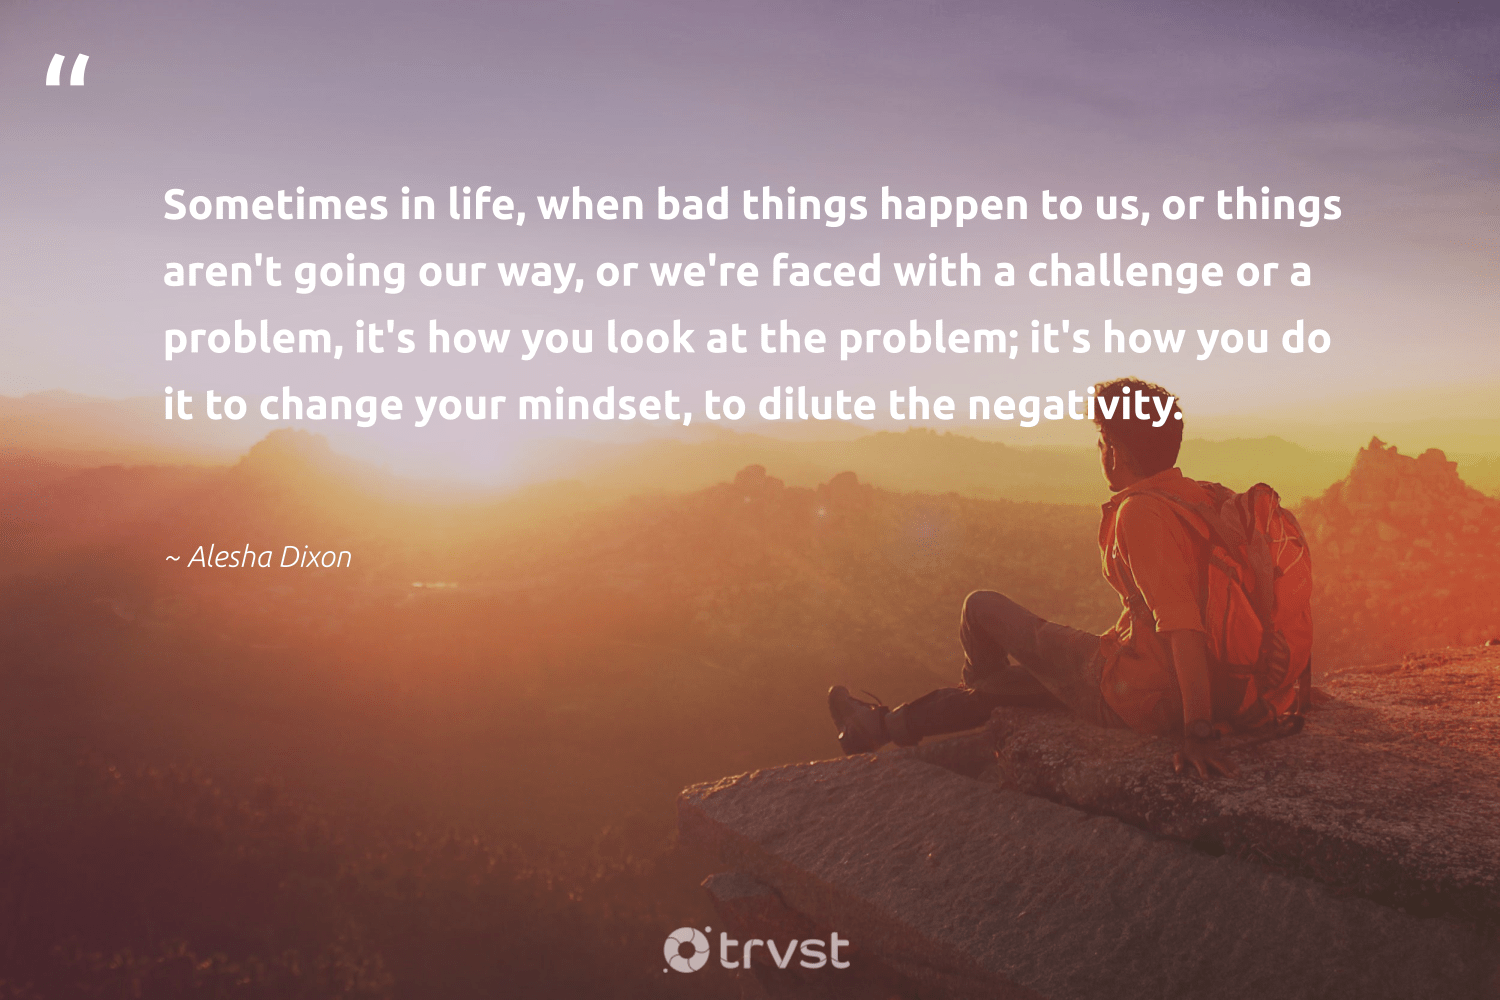 """""""Sometimes in life, when bad things happen to us, or things aren't going our way, or we're faced with a challenge or a problem, it's how you look at the problem; it's how you do it to change your mindset, to dilute the negativity.""""  - Alesha Dixon #trvst #quotes #mindset #creativemindset #begreat #changemakers #ecoconscious #entrepreneurmindset #nevergiveup #health #takeaction #meditate"""